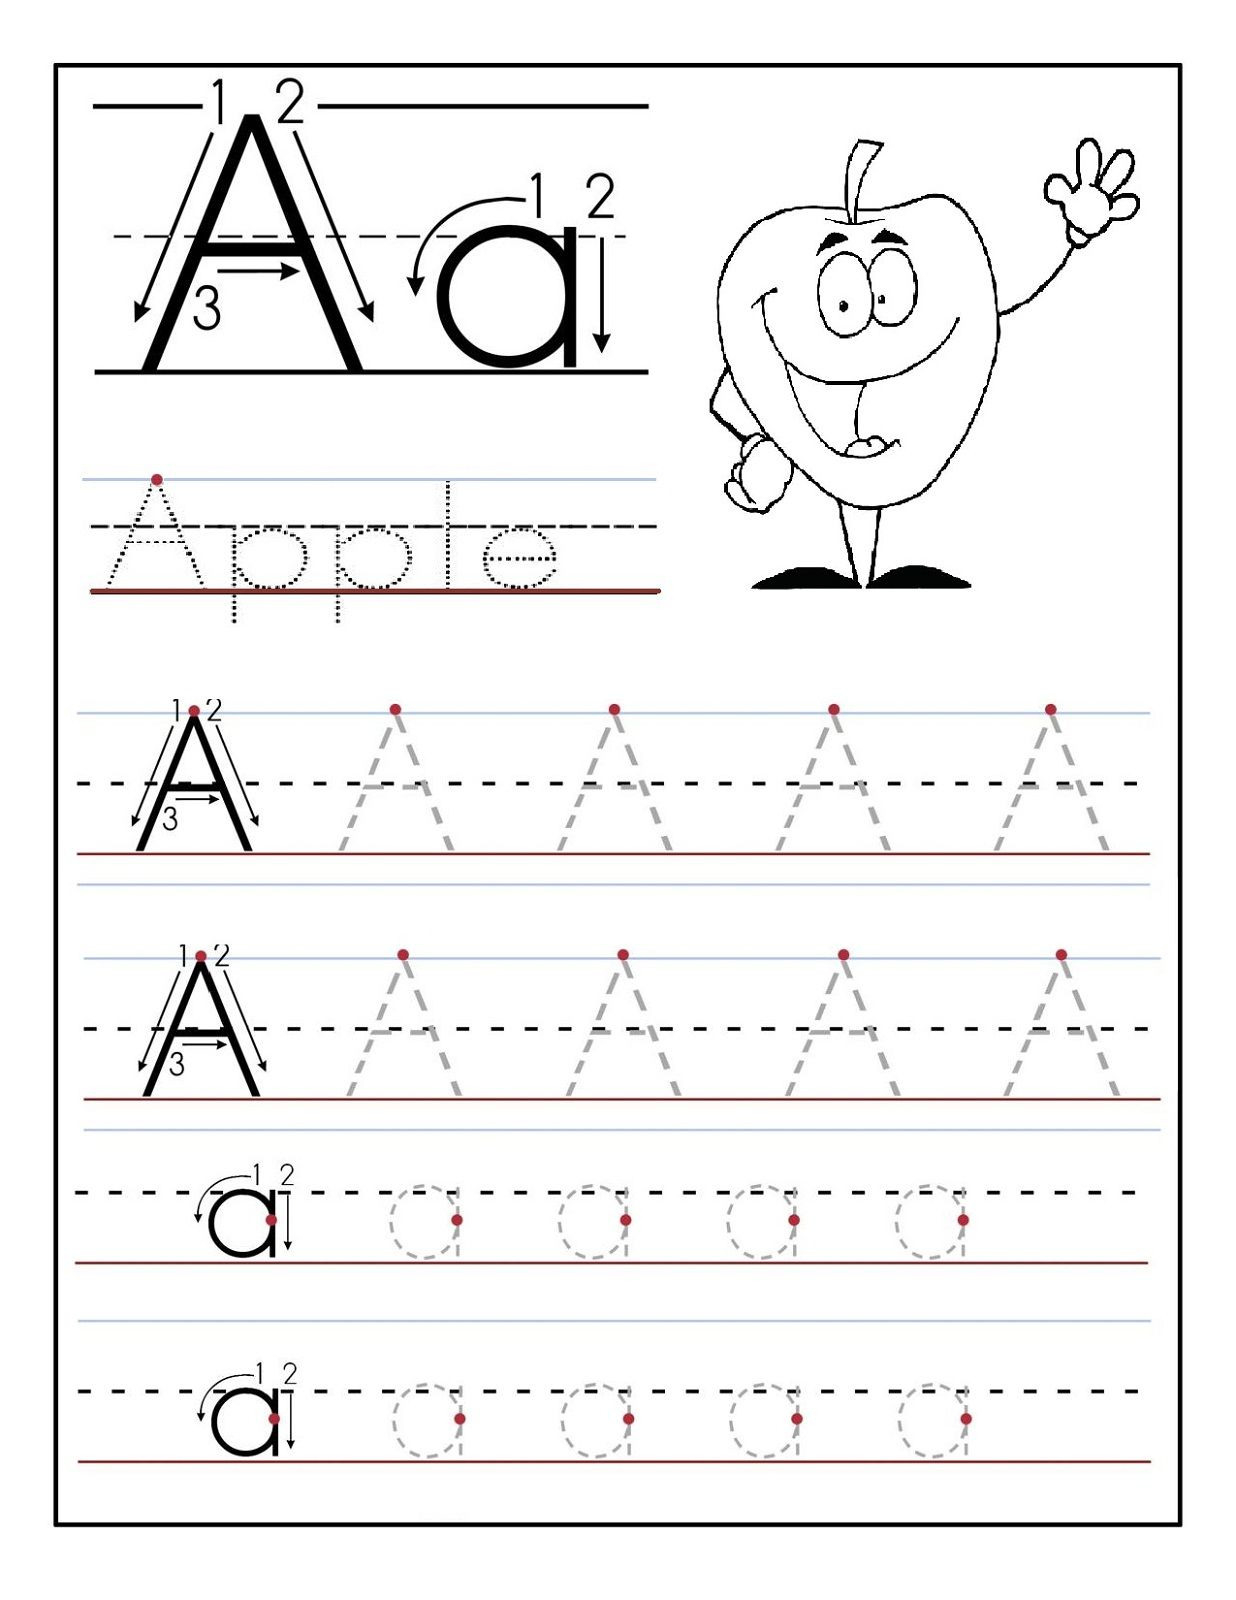 Abc Worksheets For Preschool For Print Math Worksheet For